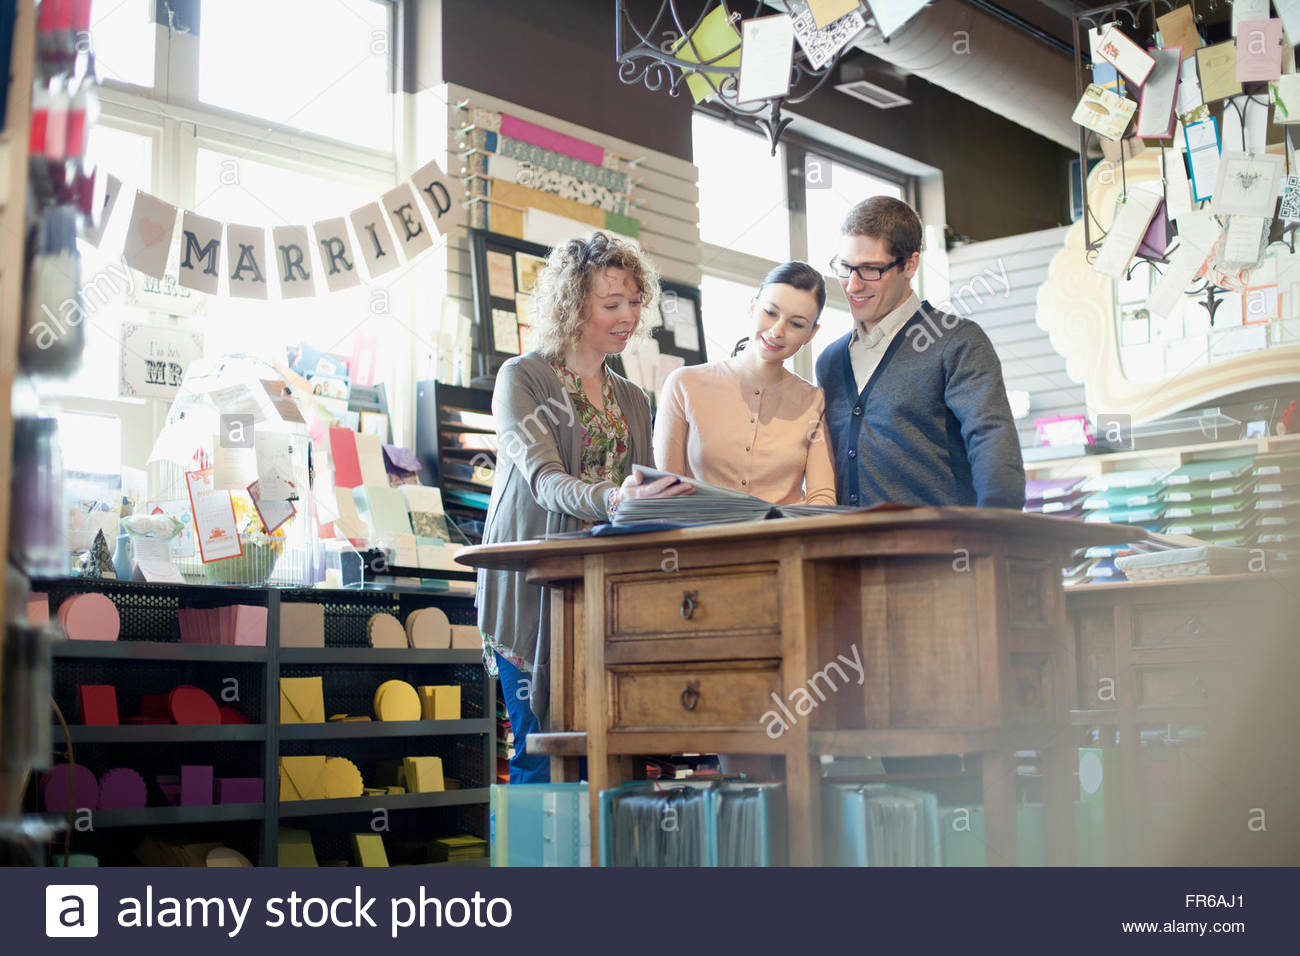 customers in discussion with store merchant - Stock Image